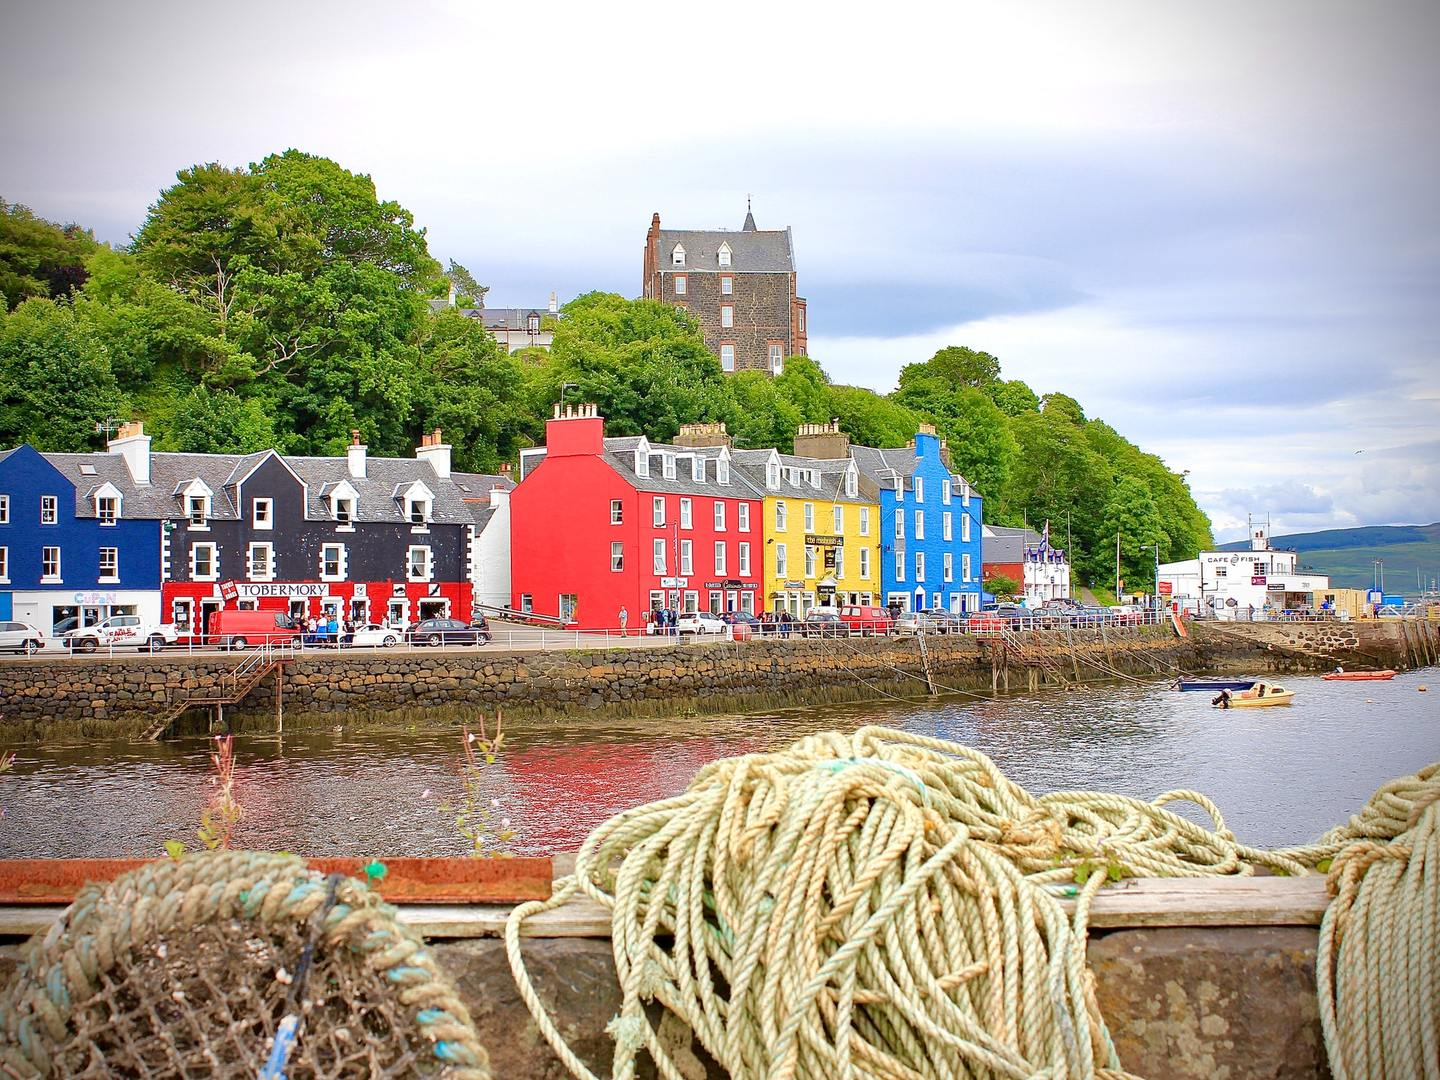 The colourful seafront of Oban, Scotland